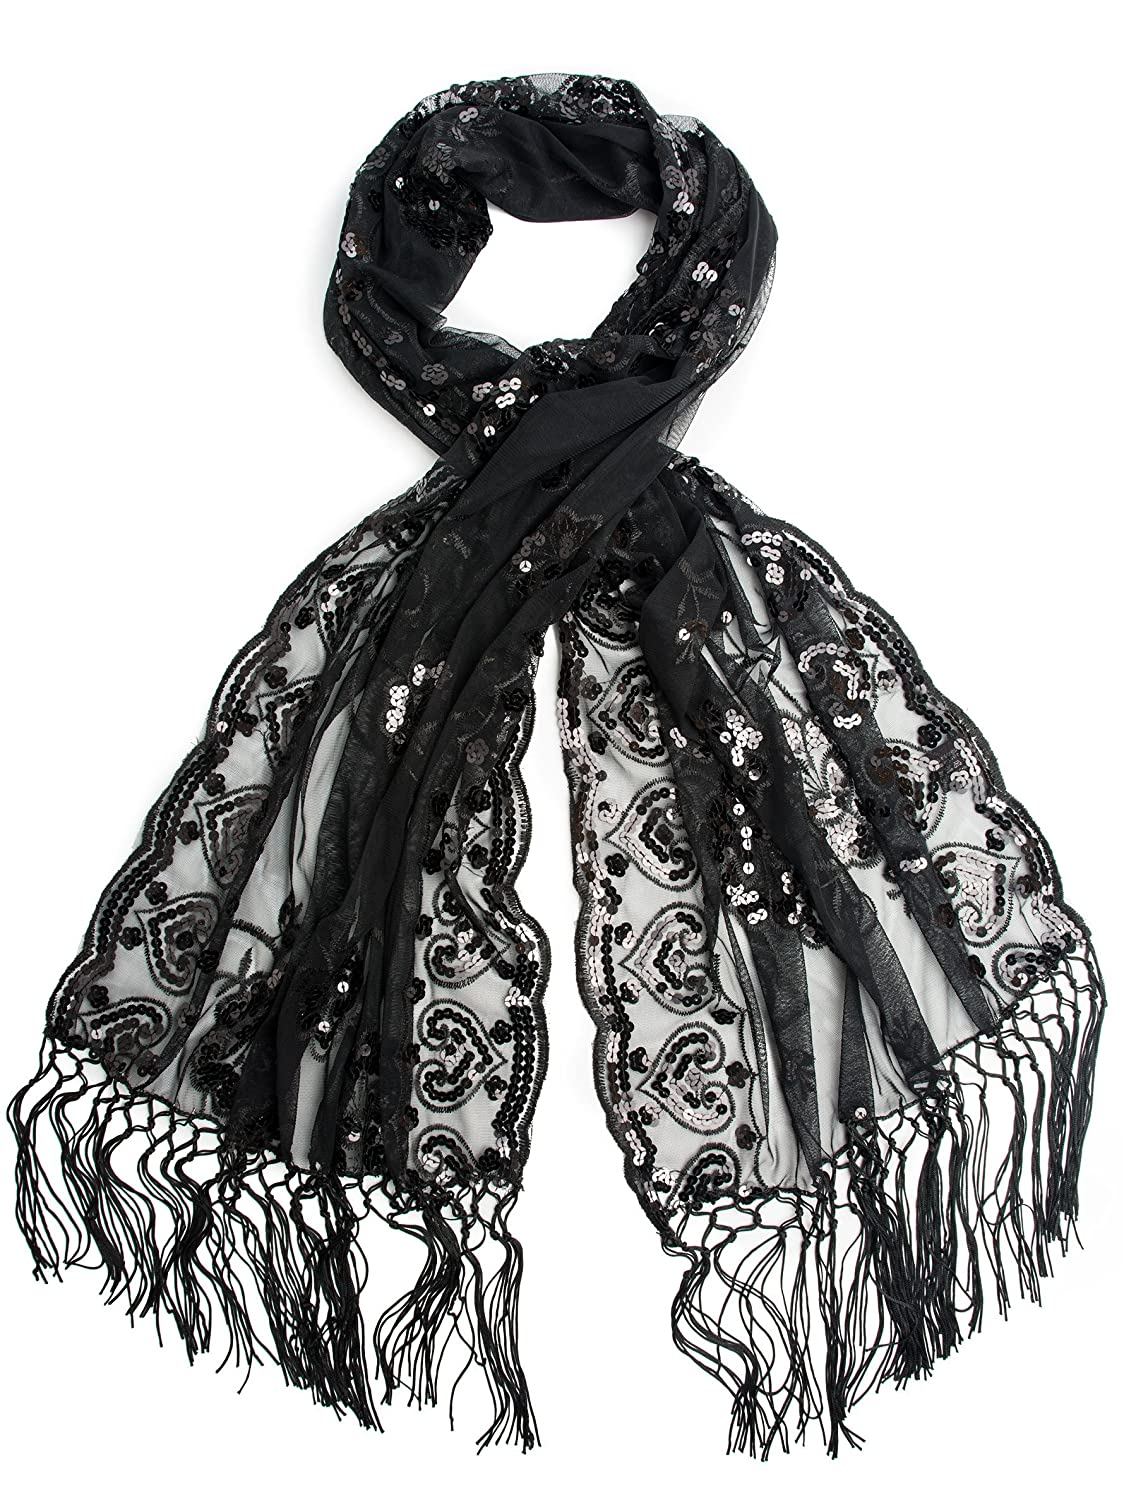 1920s Accessories Guide Black Madison Shawl Long Fringe Sequin Evening Wrap $14.95 AT vintagedancer.com